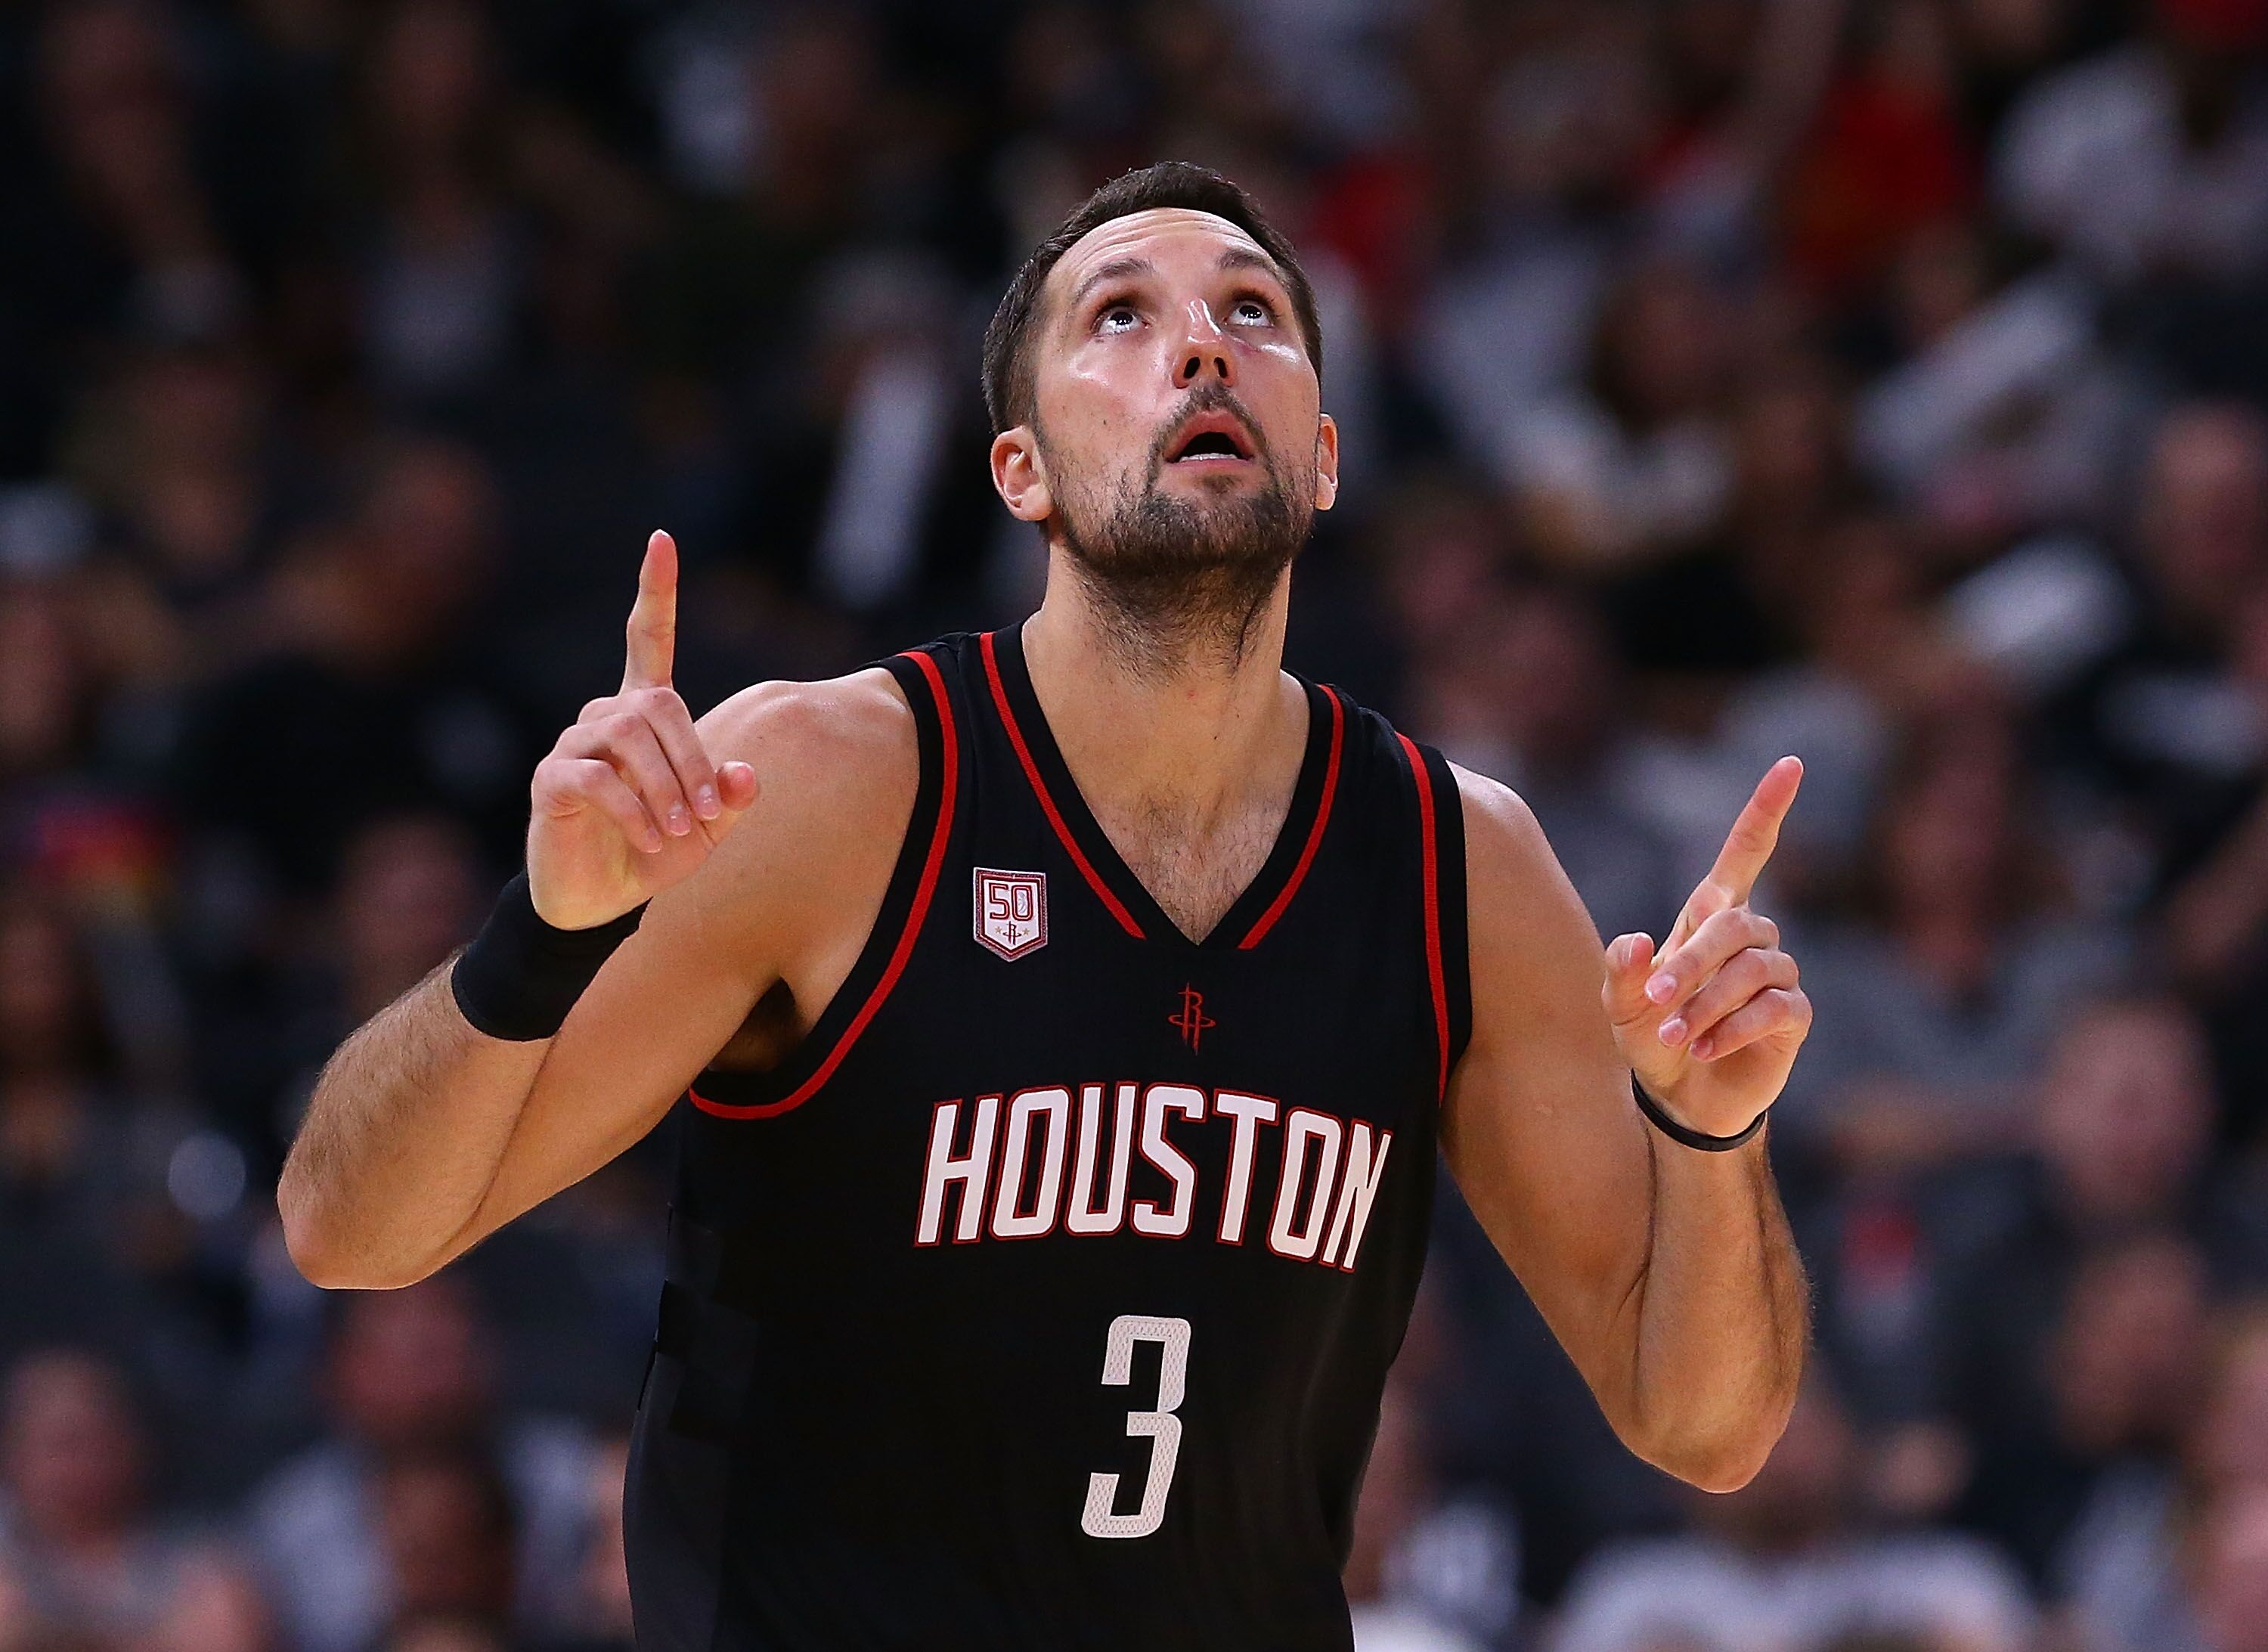 Houston Rockets: Top 3 Trade Candidates Before 2018 Deadline